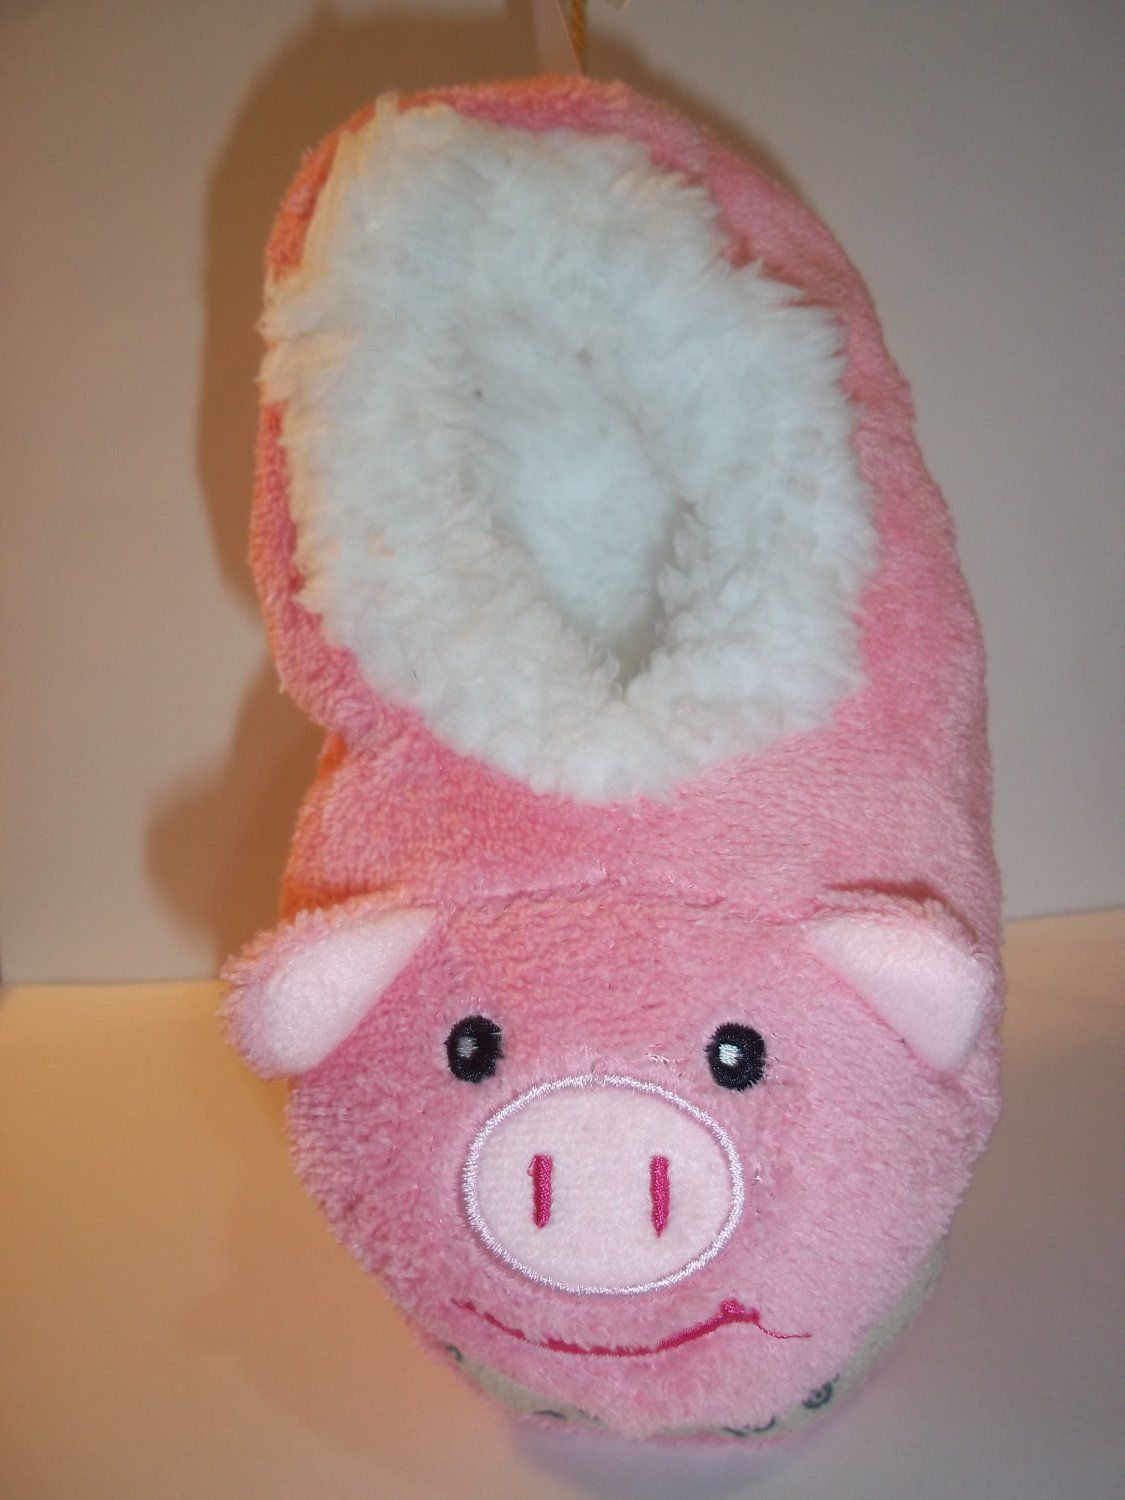 4c777d0d9158 Snoozies Animal Head Slippers - Pink PIG Pattern - Kids Size Small 13-1